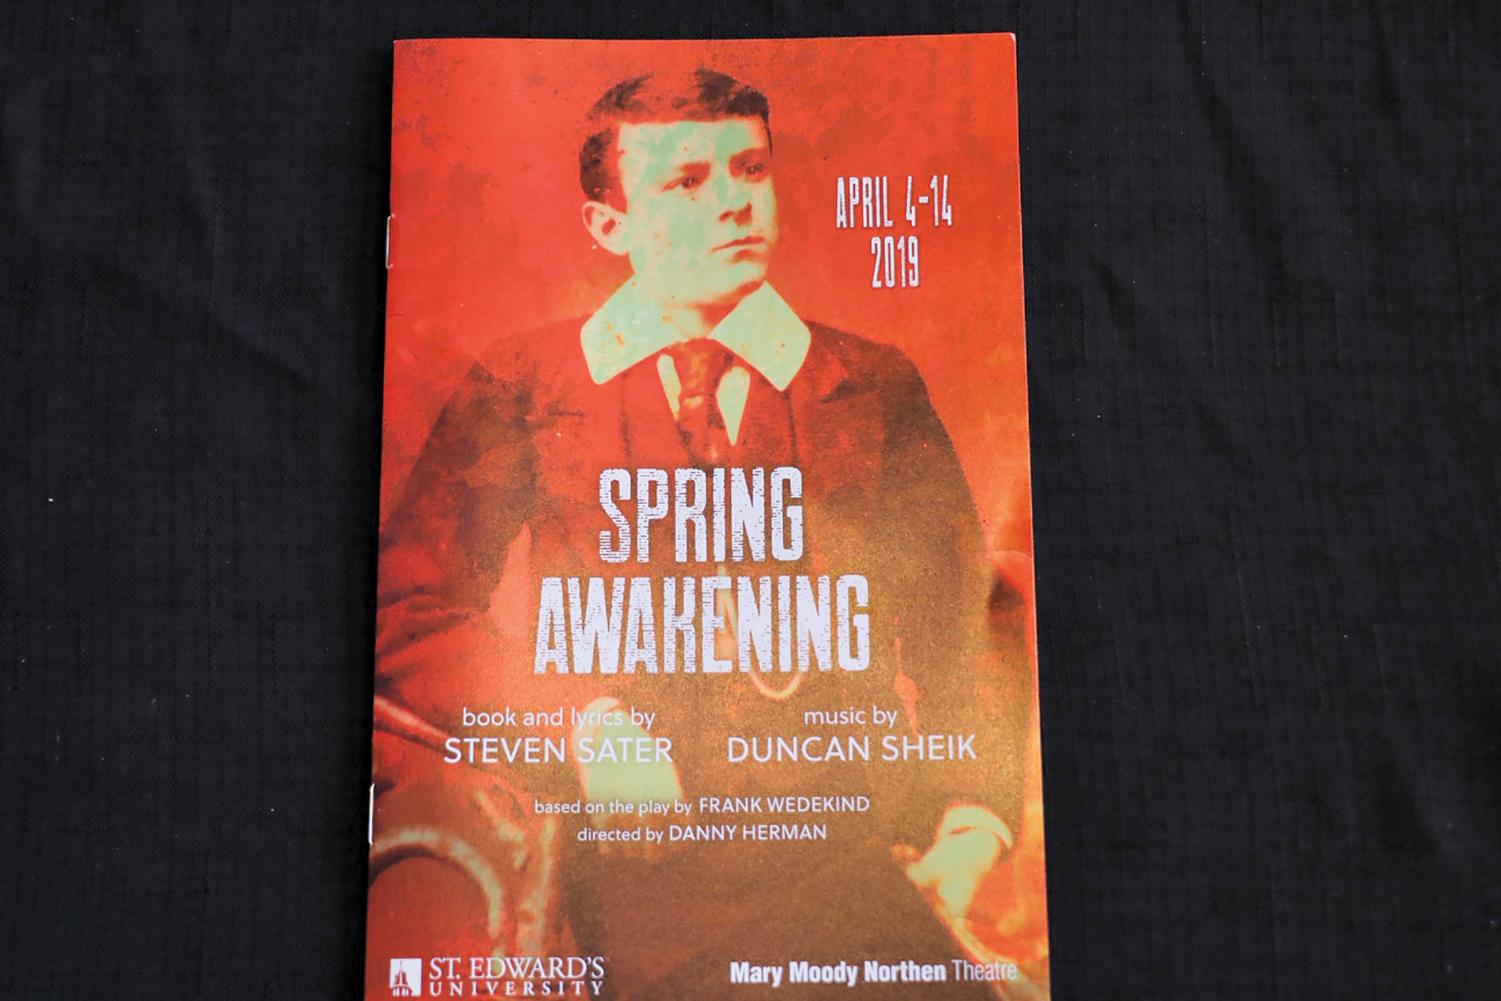 The Mary Moody Nortern Theatre's run of 'Spring Awakening' ended last week. The musical won eight Tony Awards including Best Musical in 2007. On May 2nd and 3rd the theater will be holding free showcases of current students work.